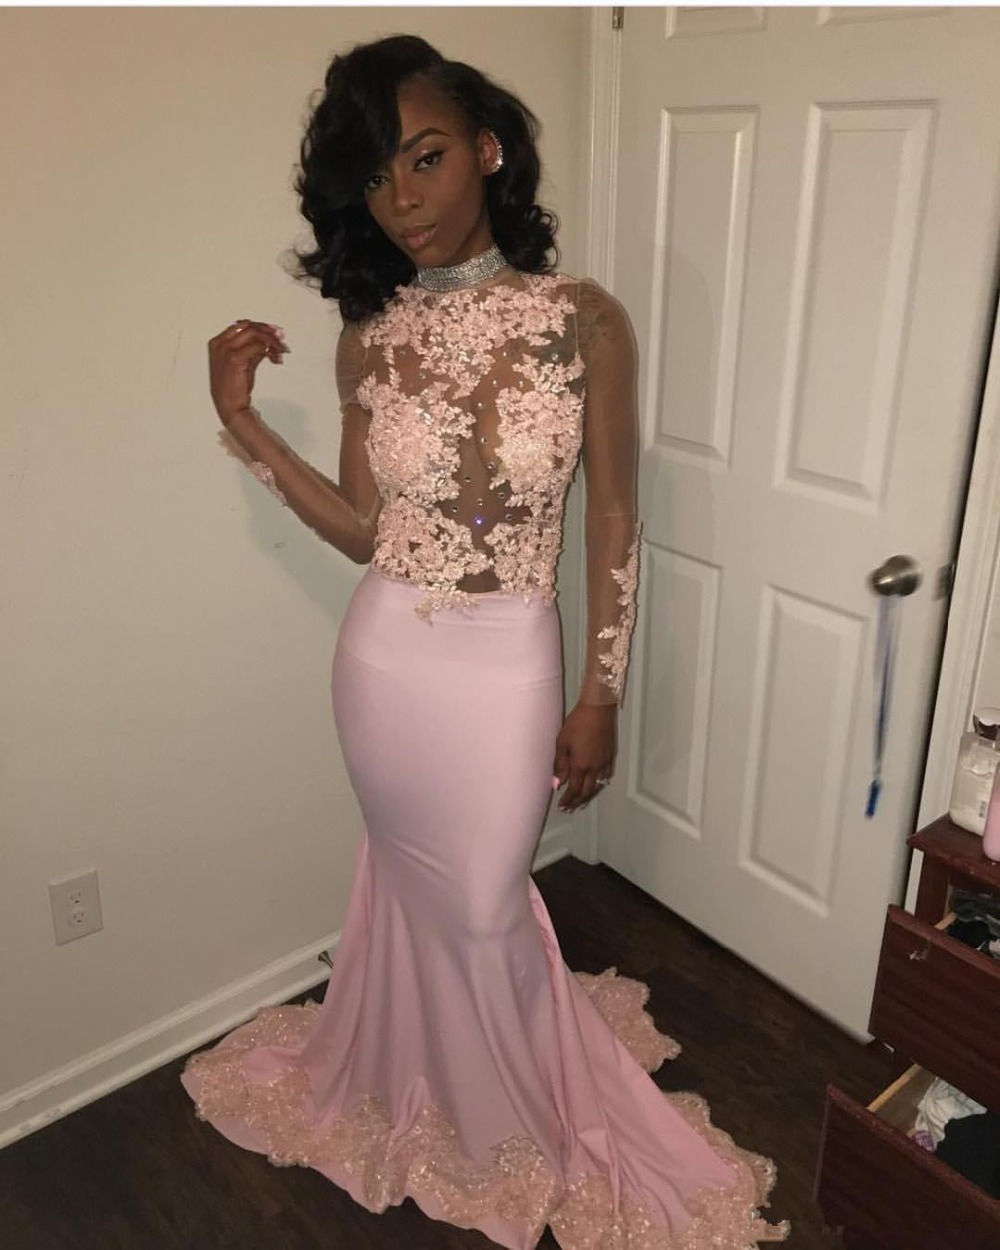 Crystal Pink Prom Dresses 2019 Evening Gowns Sexy Illusion Long Sleeve Mermaid Appliques Lace Formal Party Gowns Prom Dress